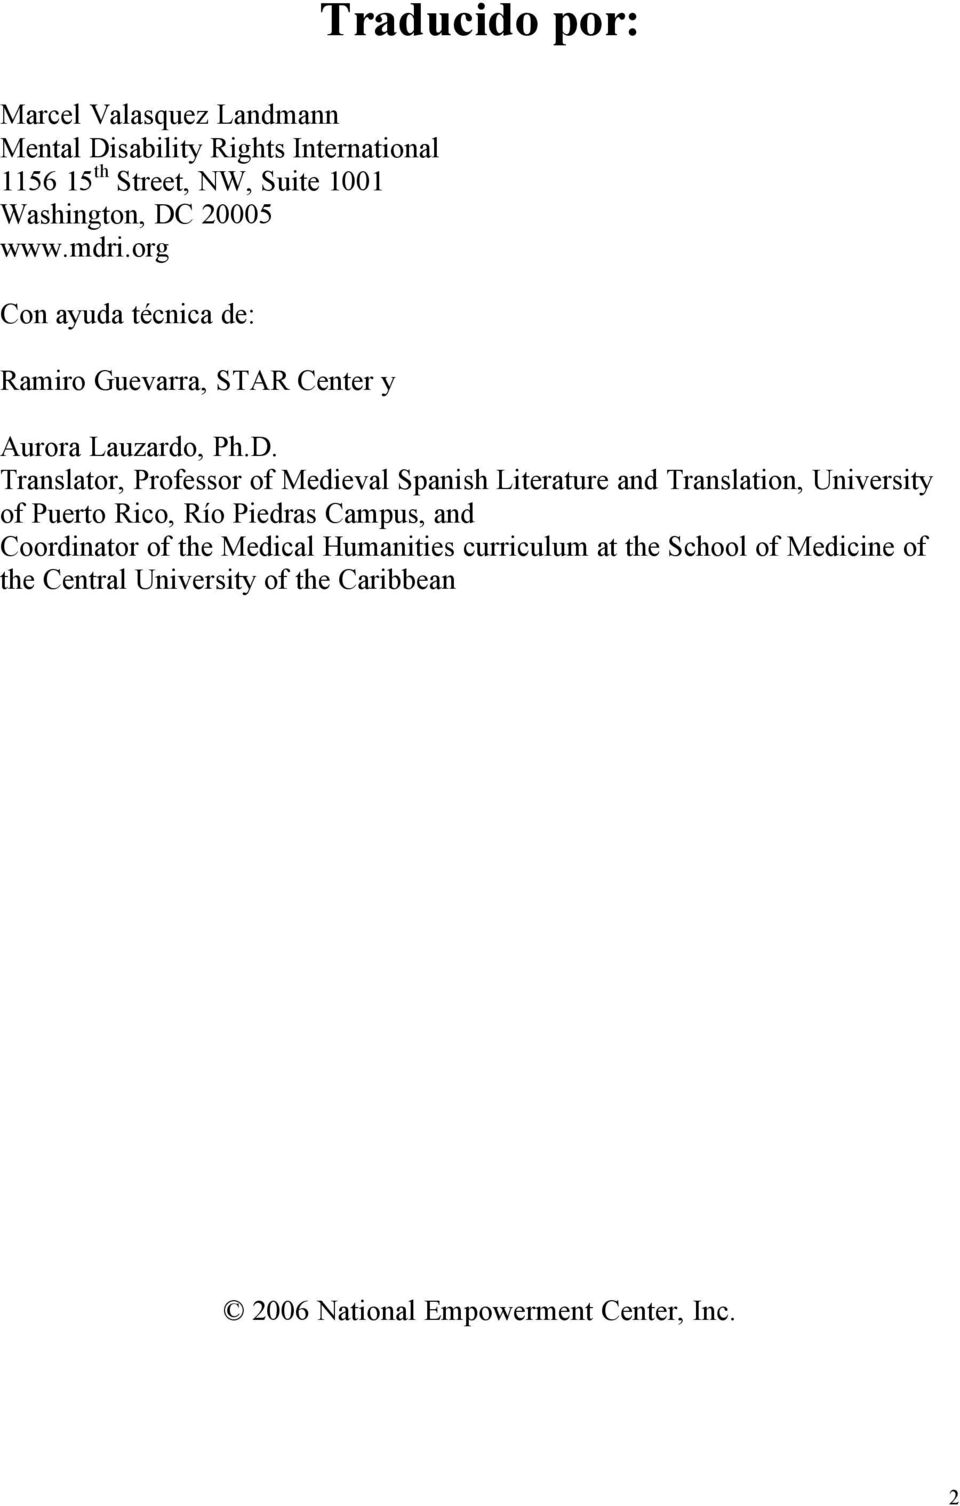 Medieval Spanish Literature and Translation, University of Puerto Rico, Río Piedras Campus, and Coordinator of the Medical